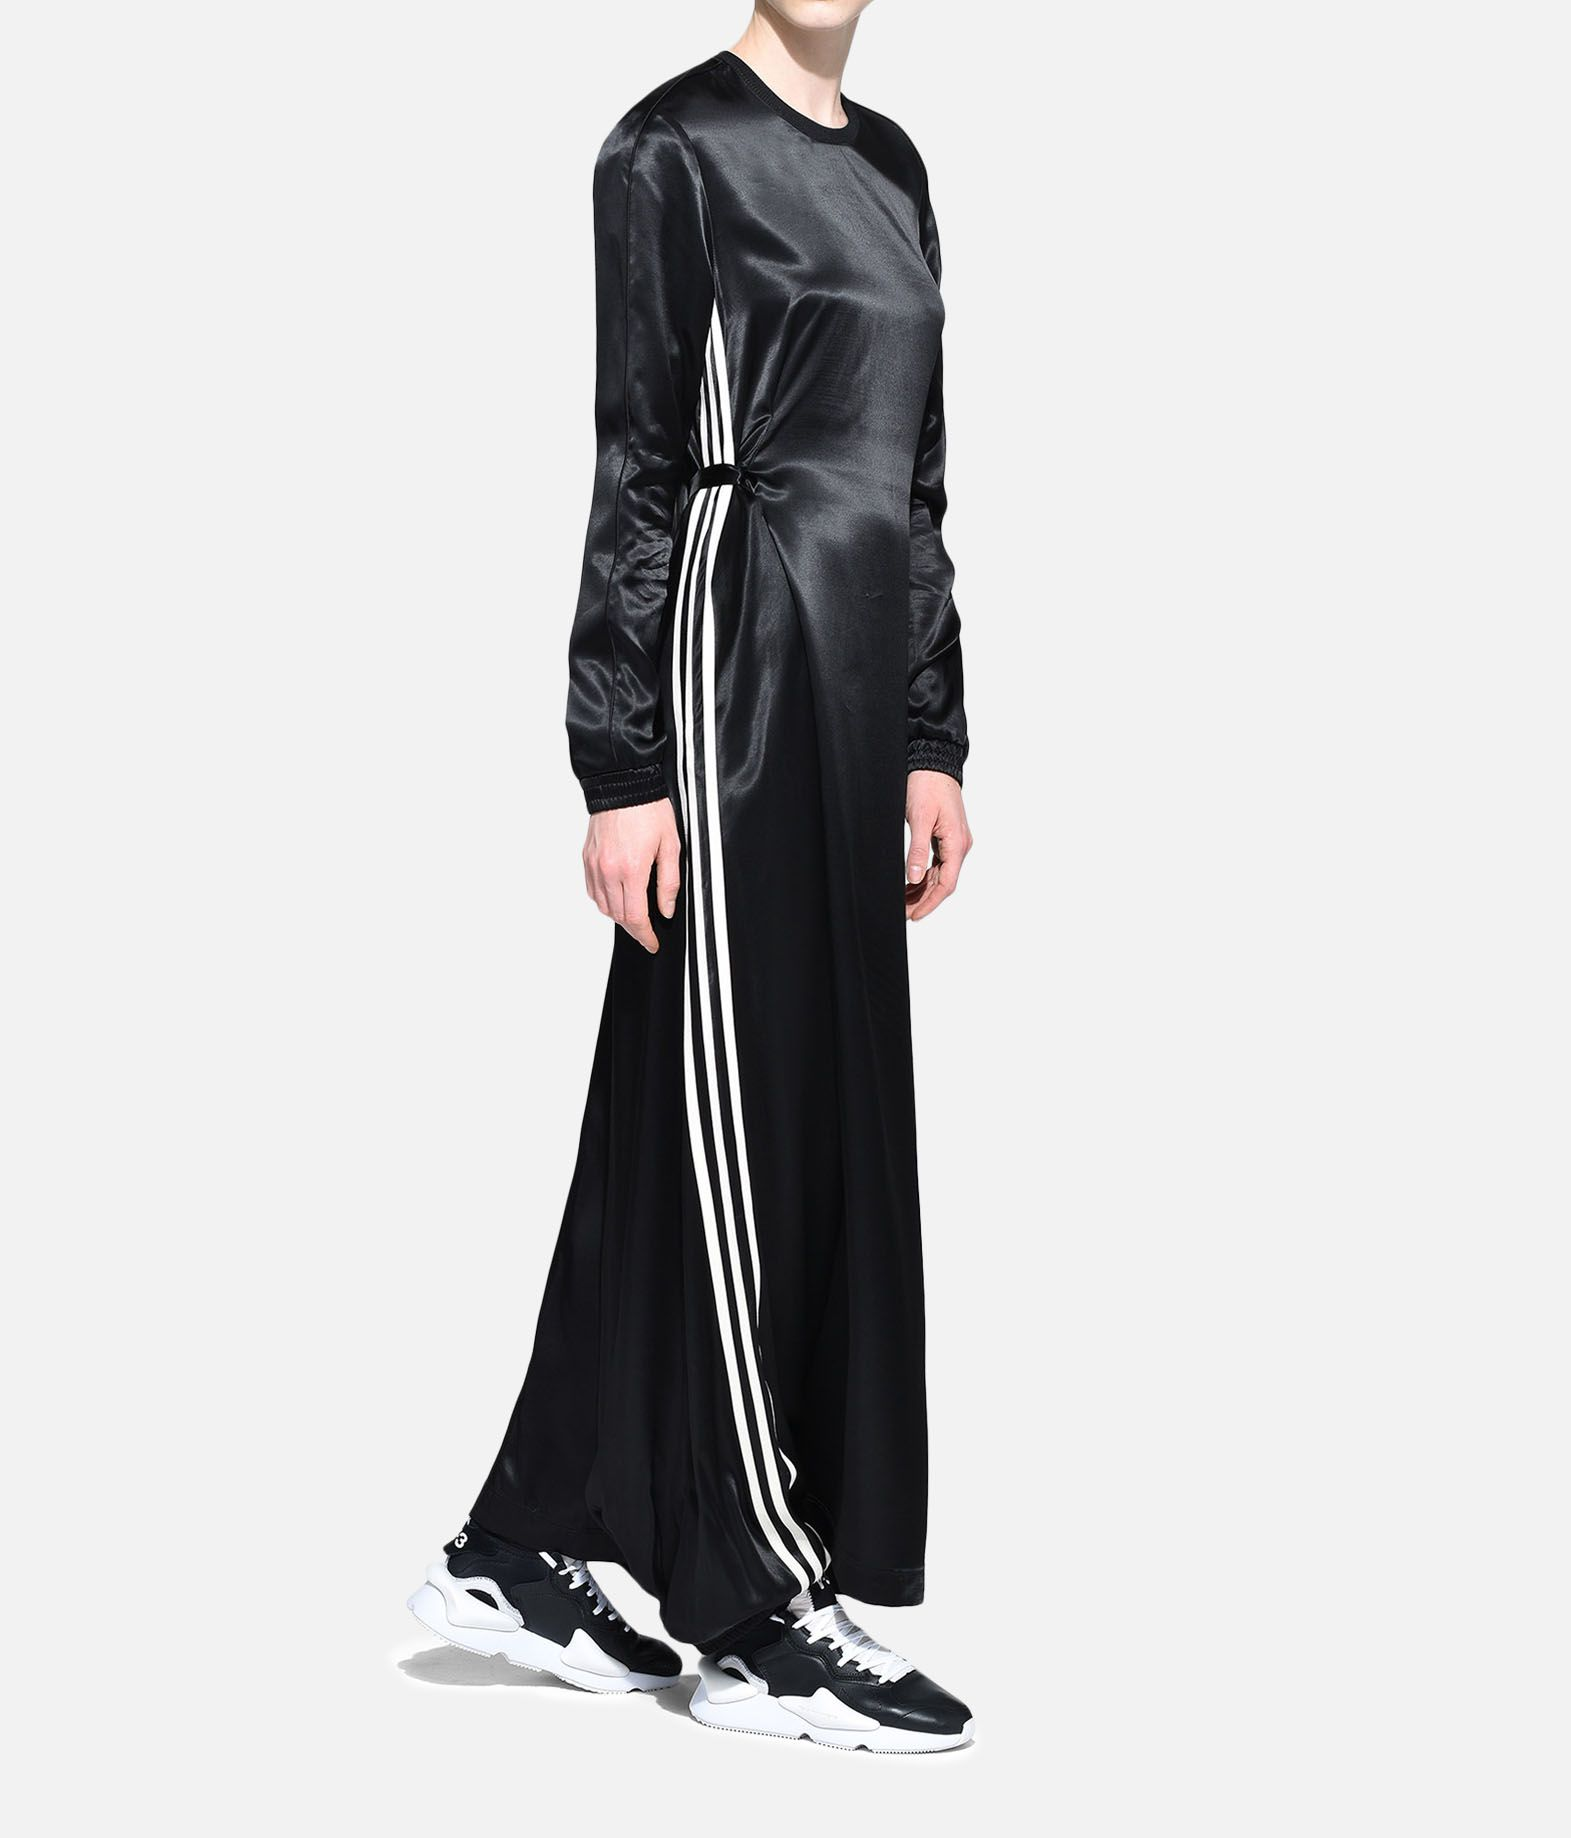 Y-3 Y-3 3-Stripes Lux Track Dress Robe longue Femme a